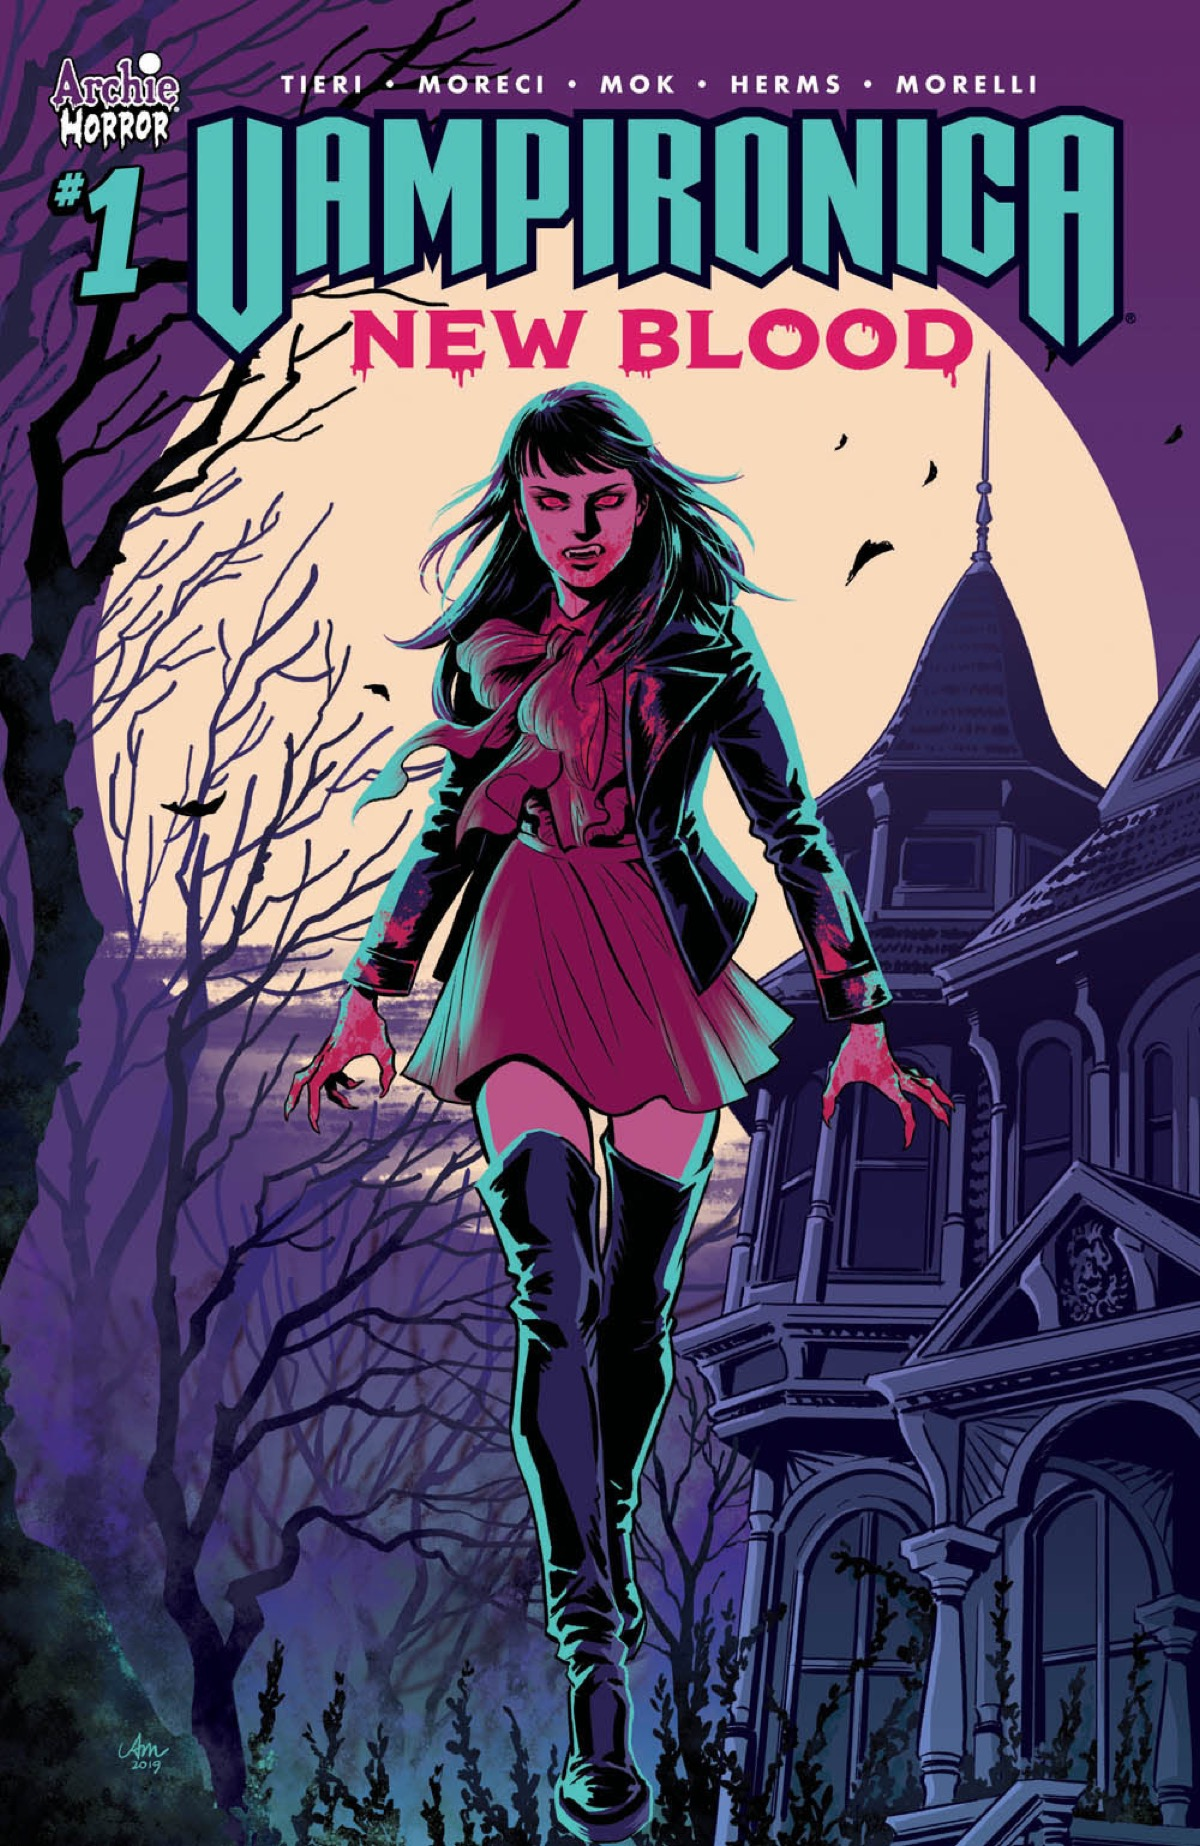 Vampironica Returns in December in New Blood by Frank Tieri, Michael Moreci, and Audrey Mok